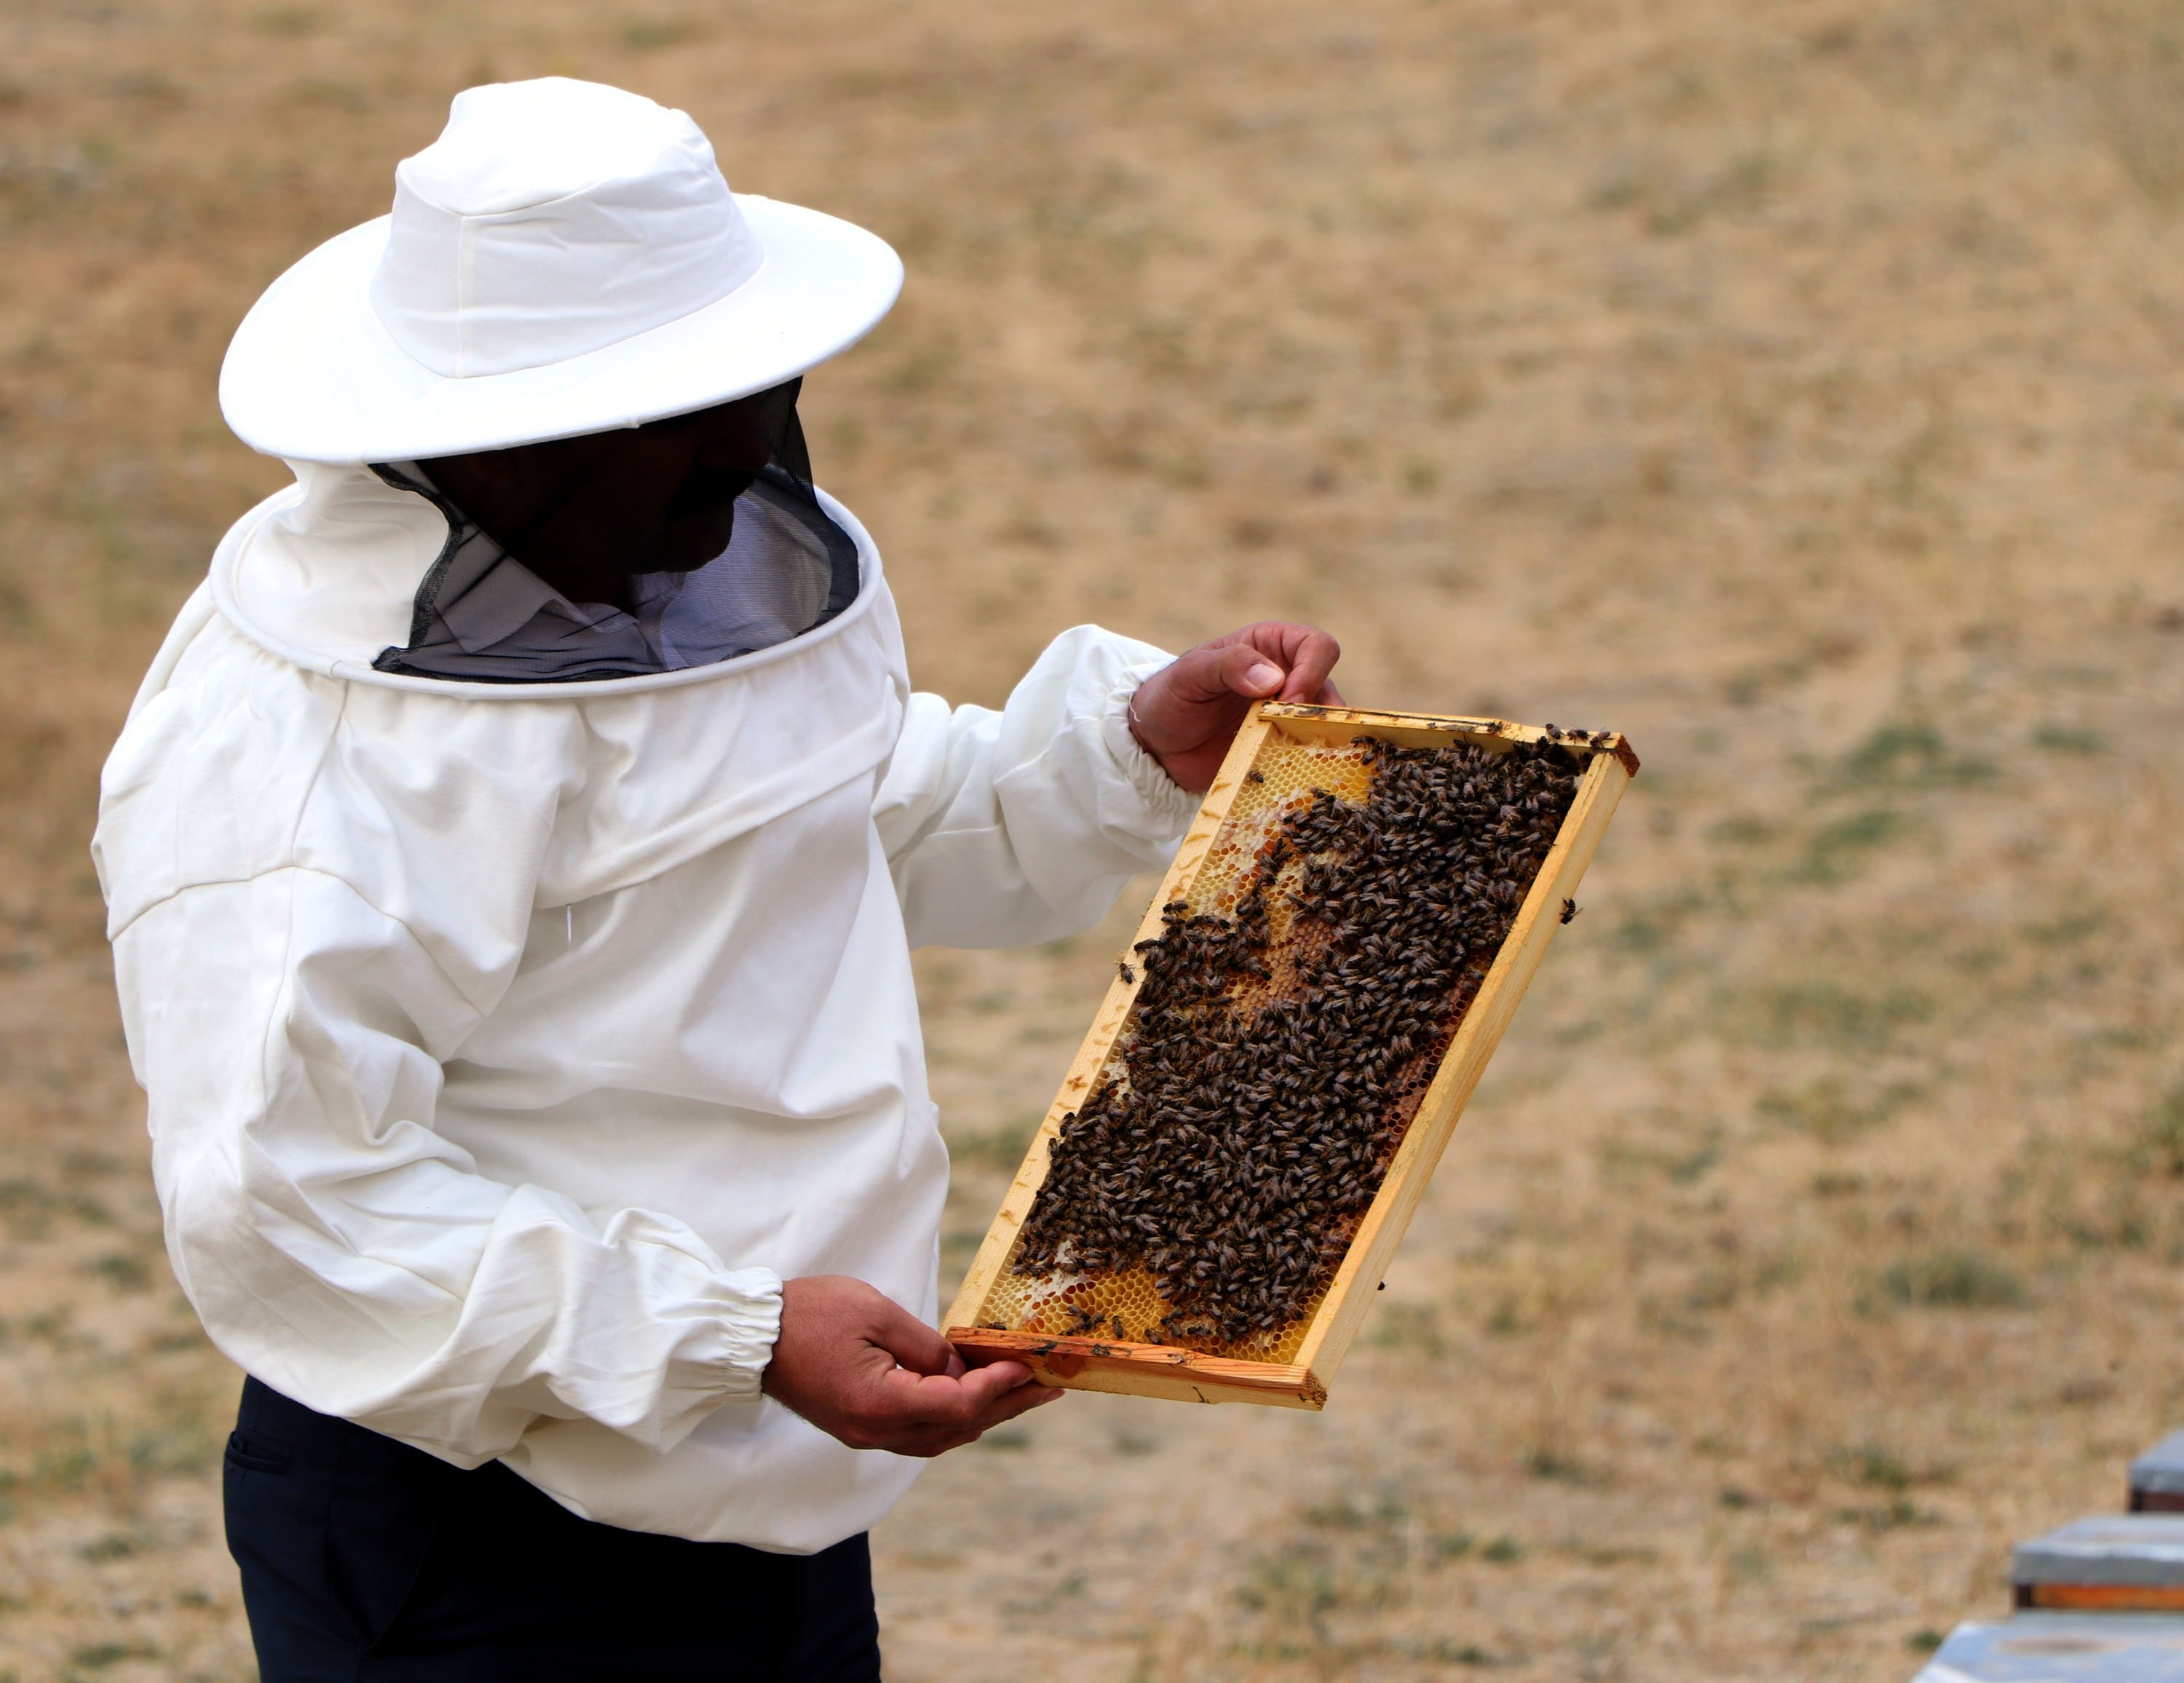 Beekeepers blame global warming for death of millions of bees in southern Turkey